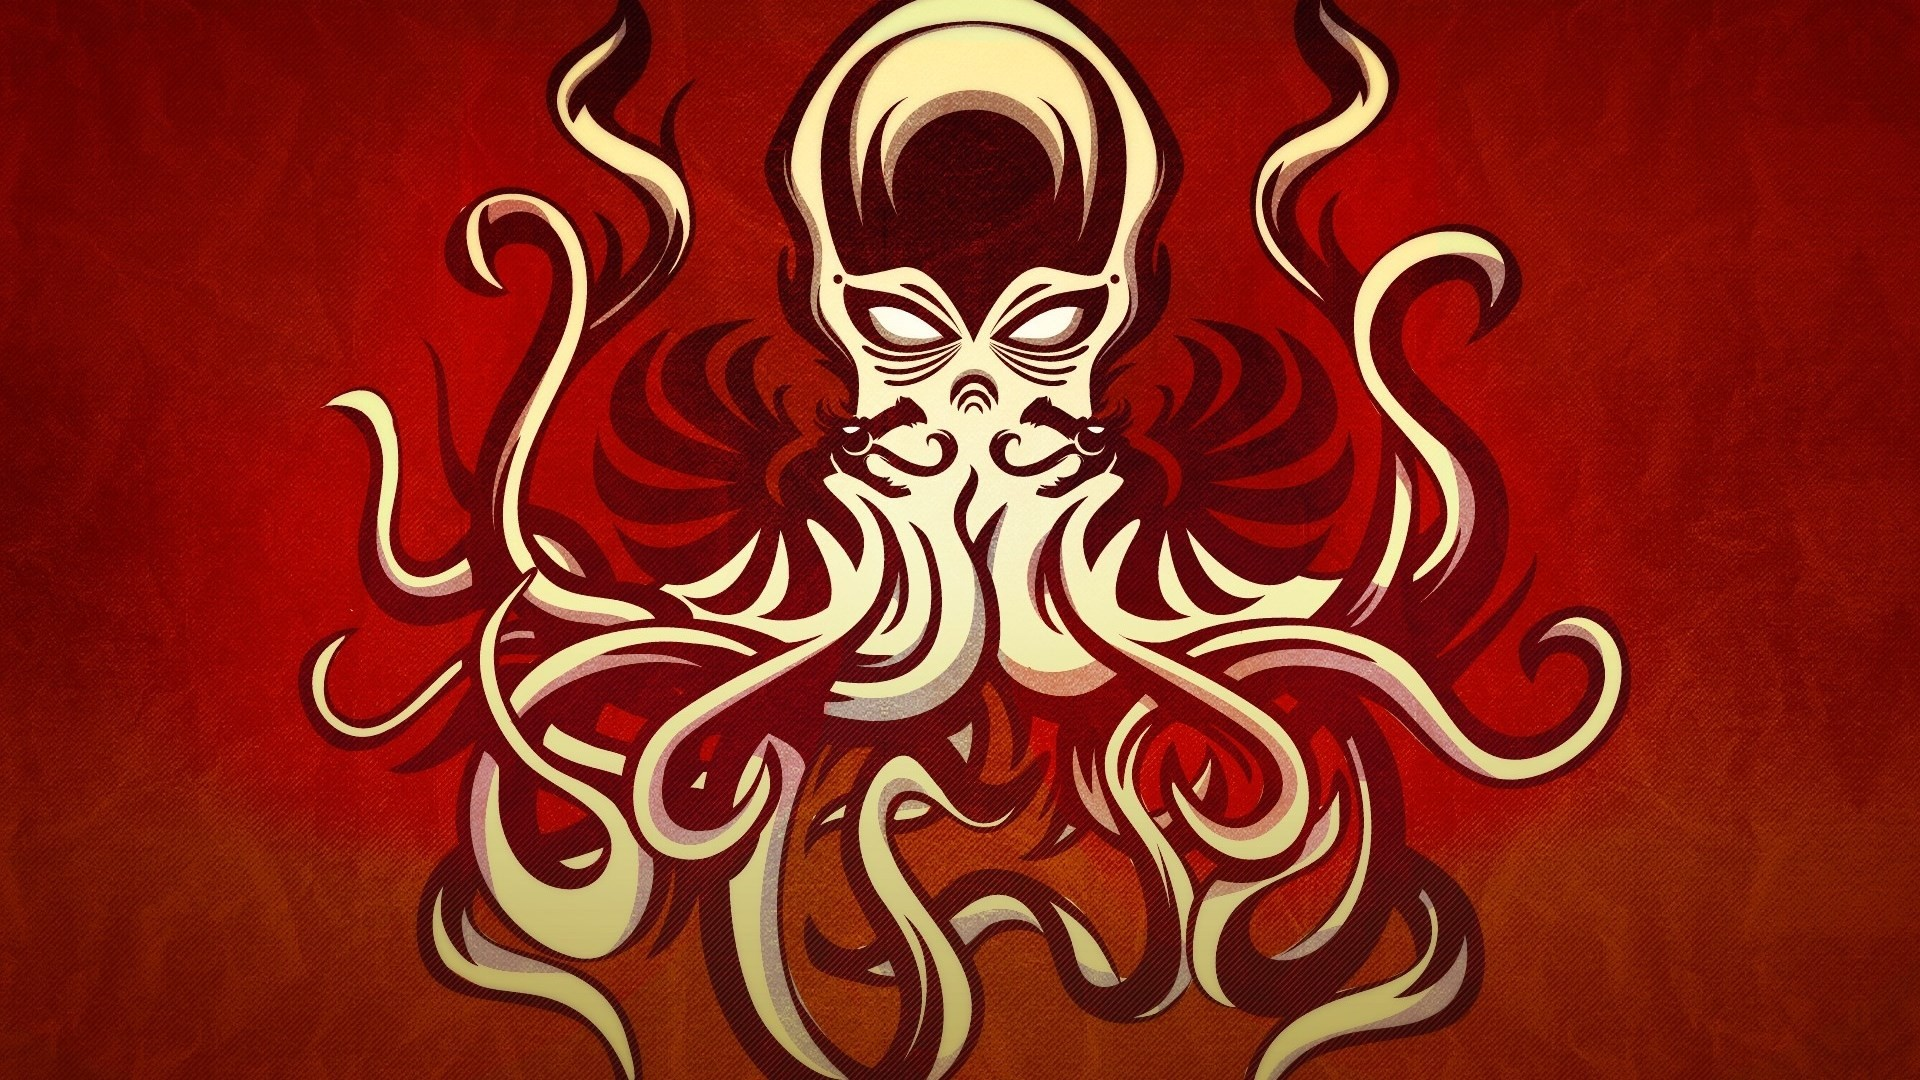 Res: 1920x1080, 1920×1080-High-Quality-cthulhu-wallpaper-wpt800916